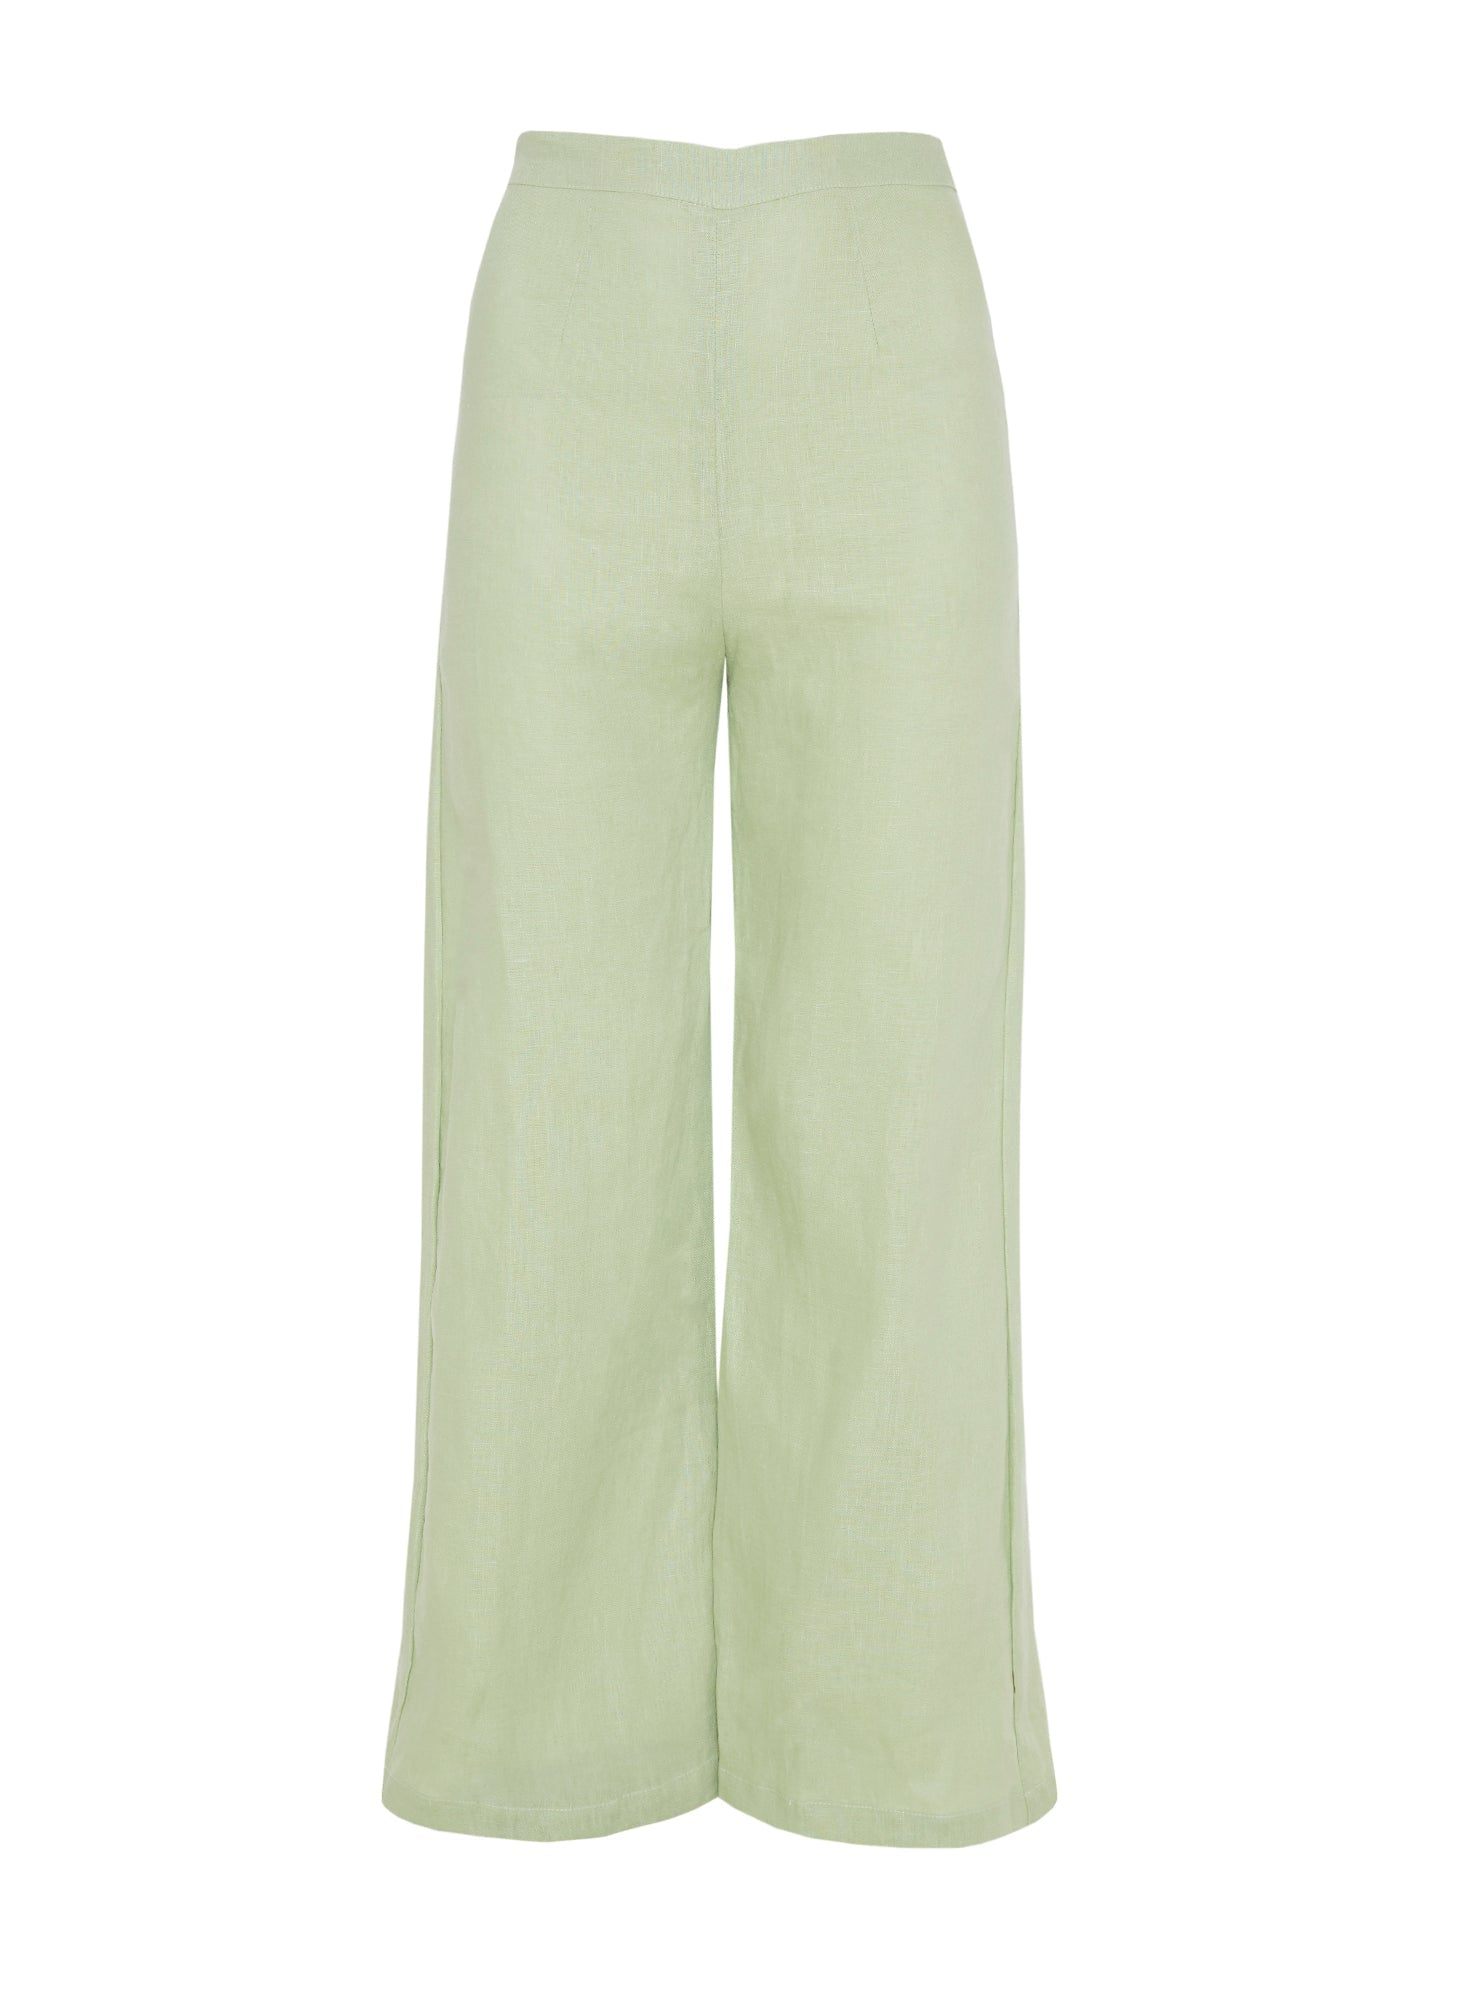 PLAIN WASHED LIME - SCELSI PANT